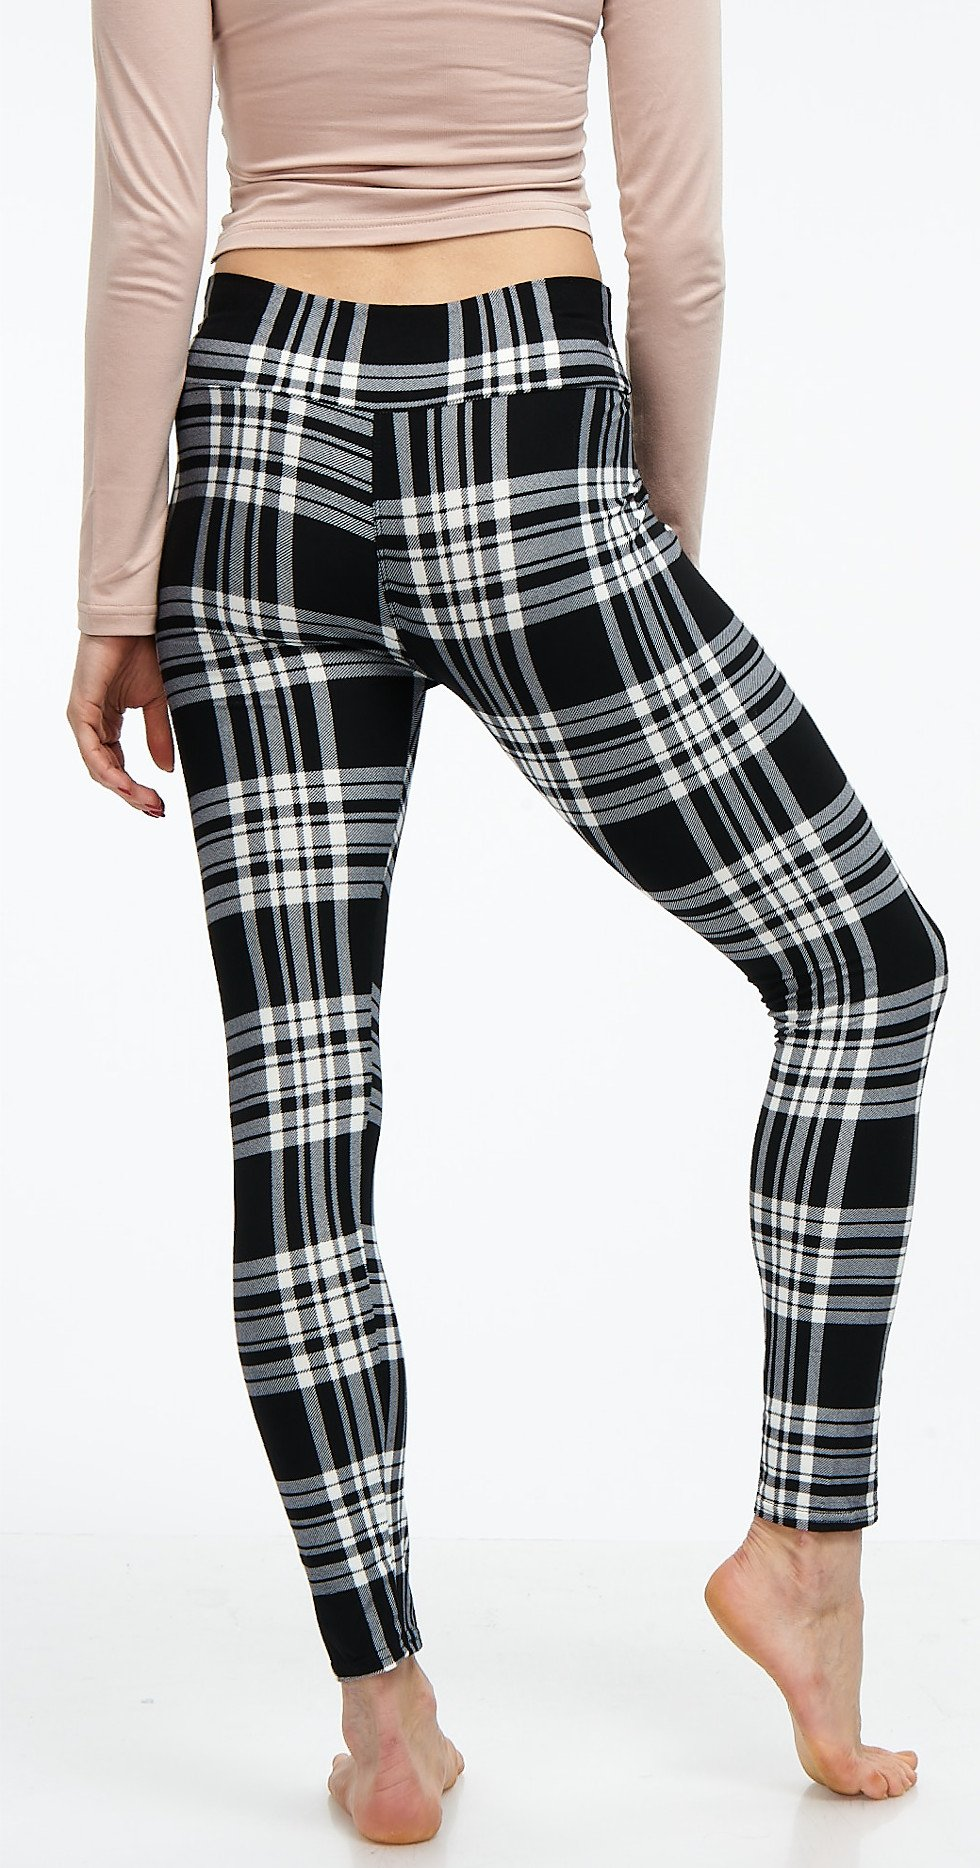 LMB Lush Moda Extra Soft Leggings with Designs- Variety of Prints Yoga Waist - 769YF Black White Plaid B5 by LMB (Image #7)